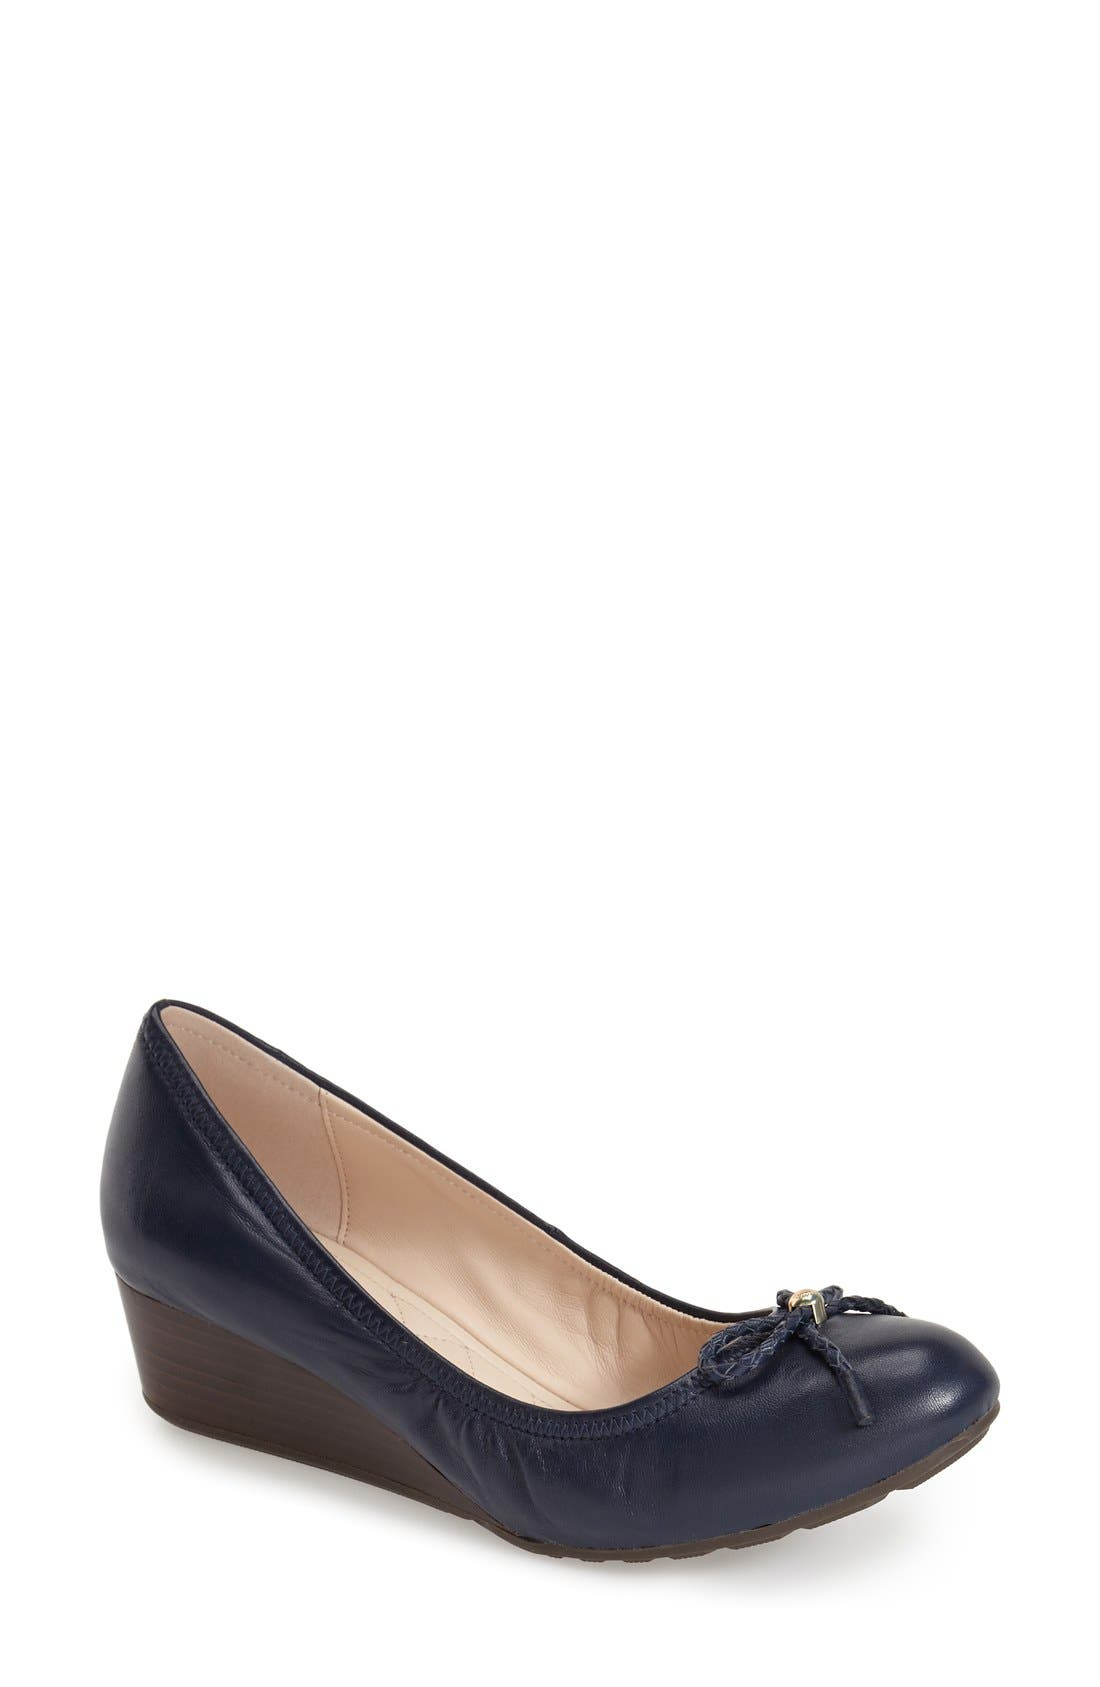 COLE HAAN 'Tali' Bow Wedge Pump